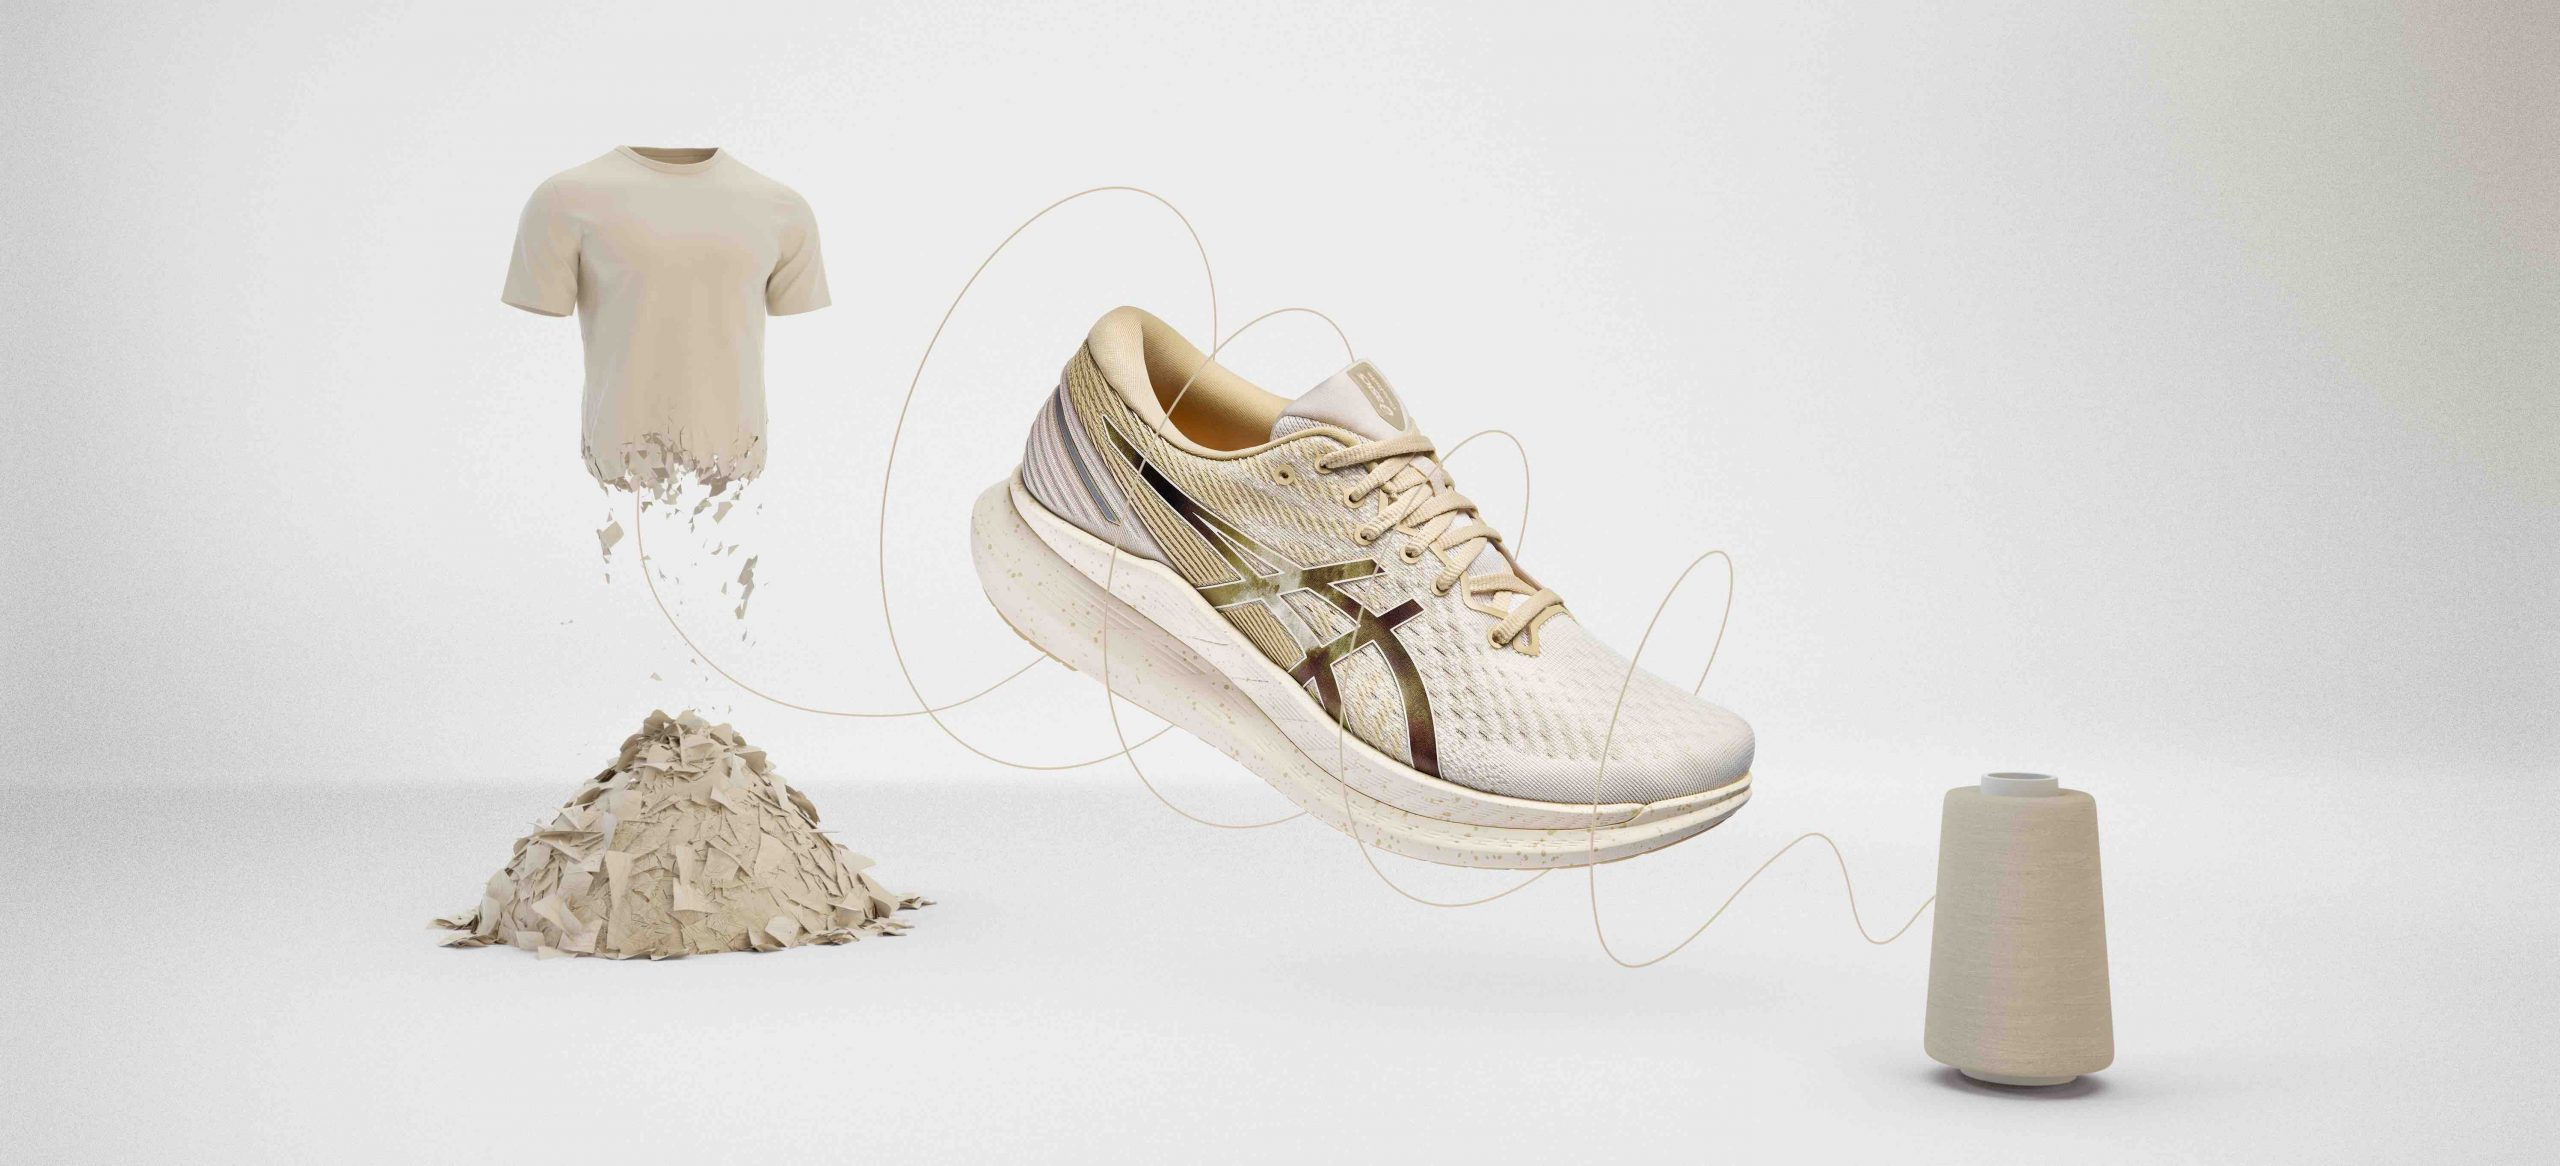 ASICS launch their most sustainable collection for Earth Day